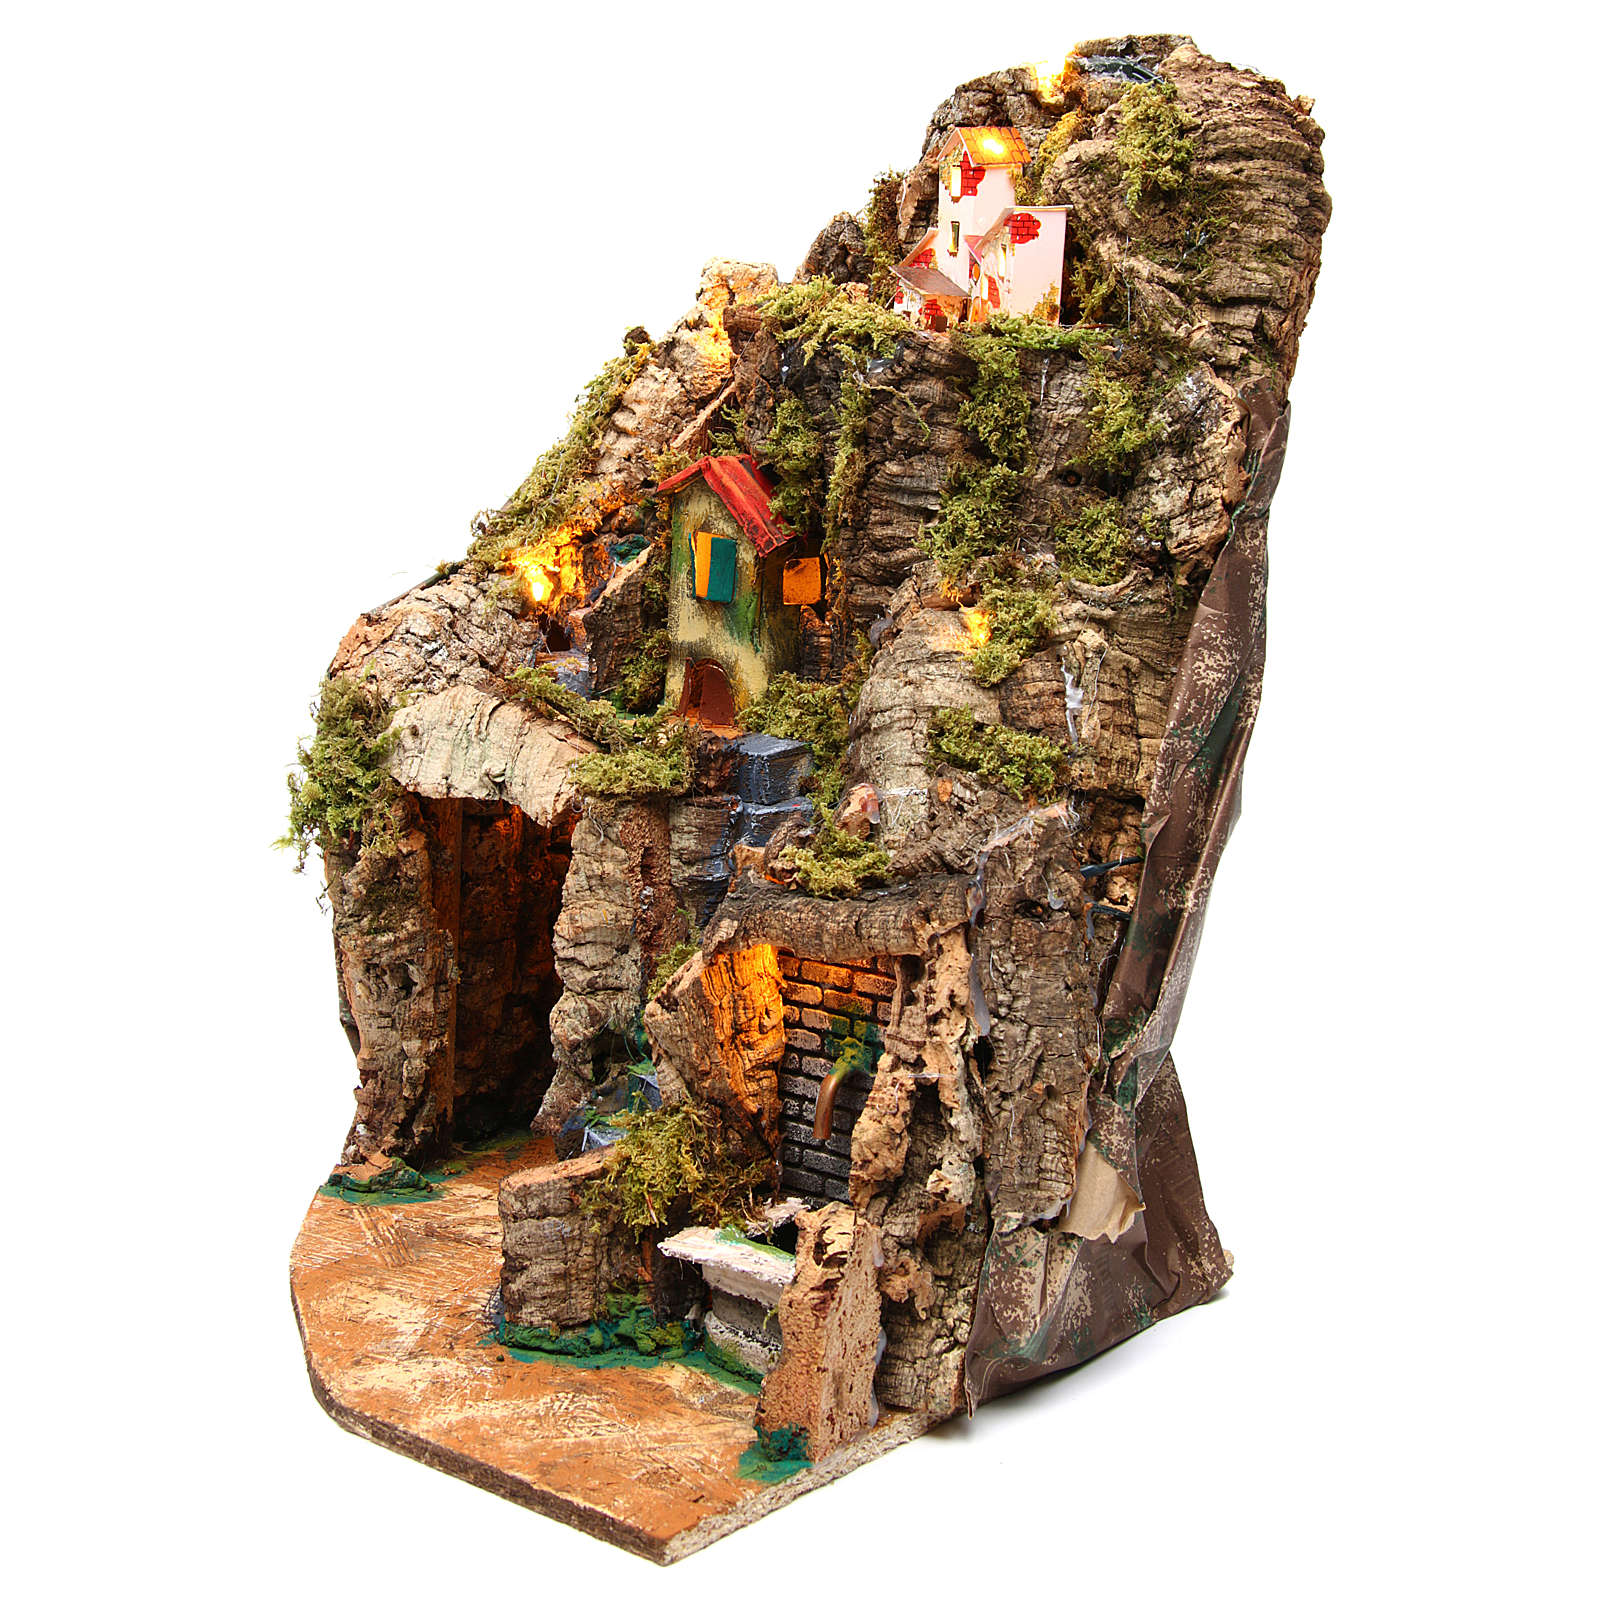 Nativity scene corner setting with fountain 30x30x40 cm for 8-10 cm characters 4